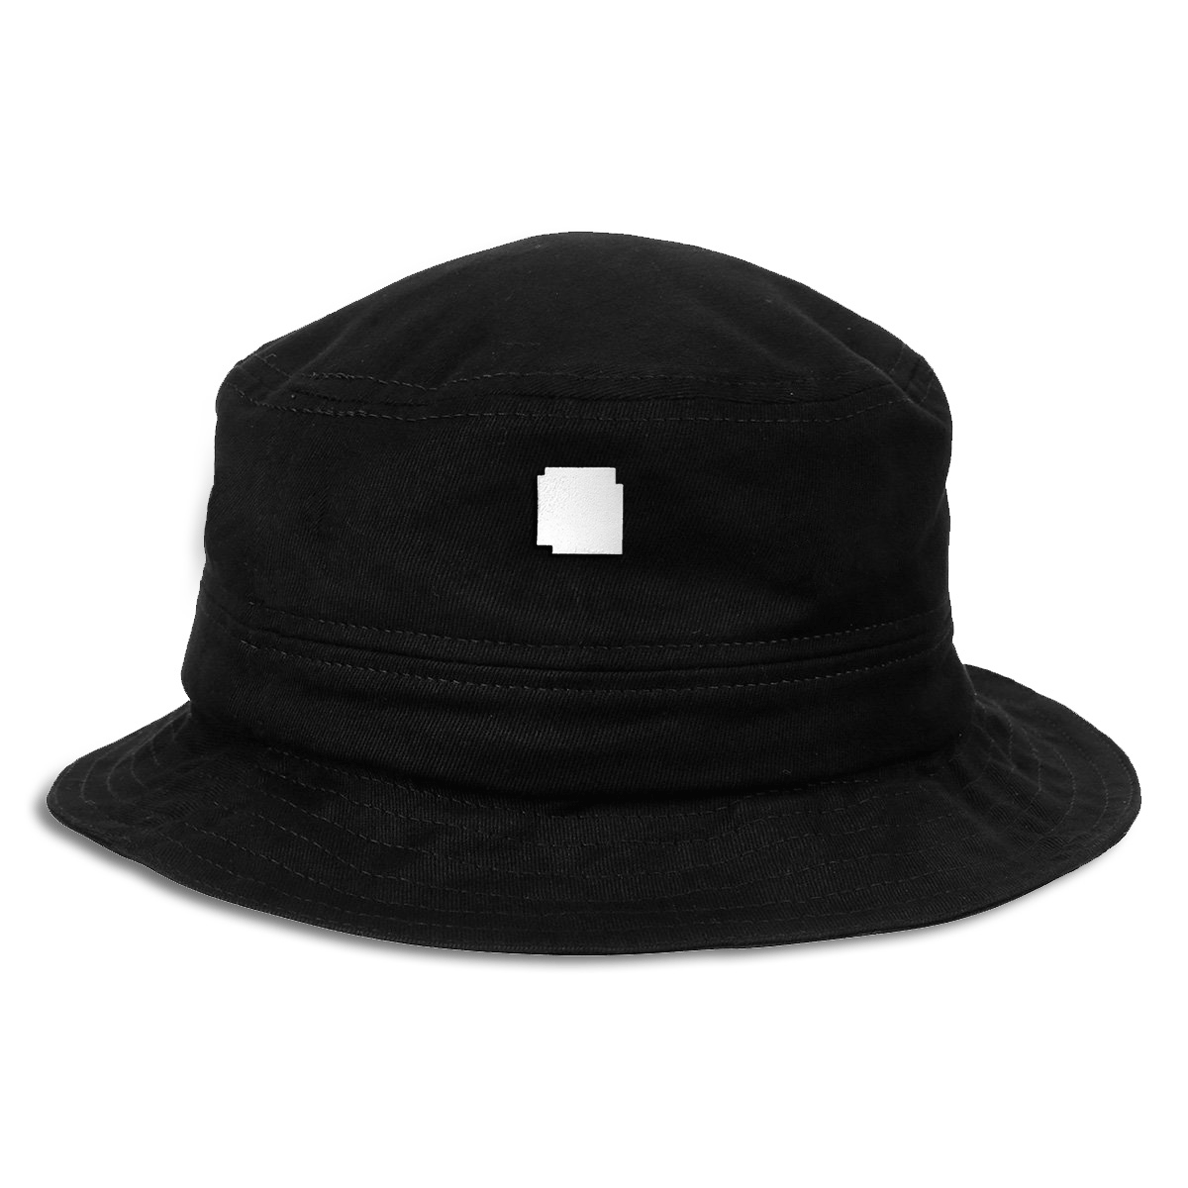 BUCKET HAT ARTE CORE - STARTER